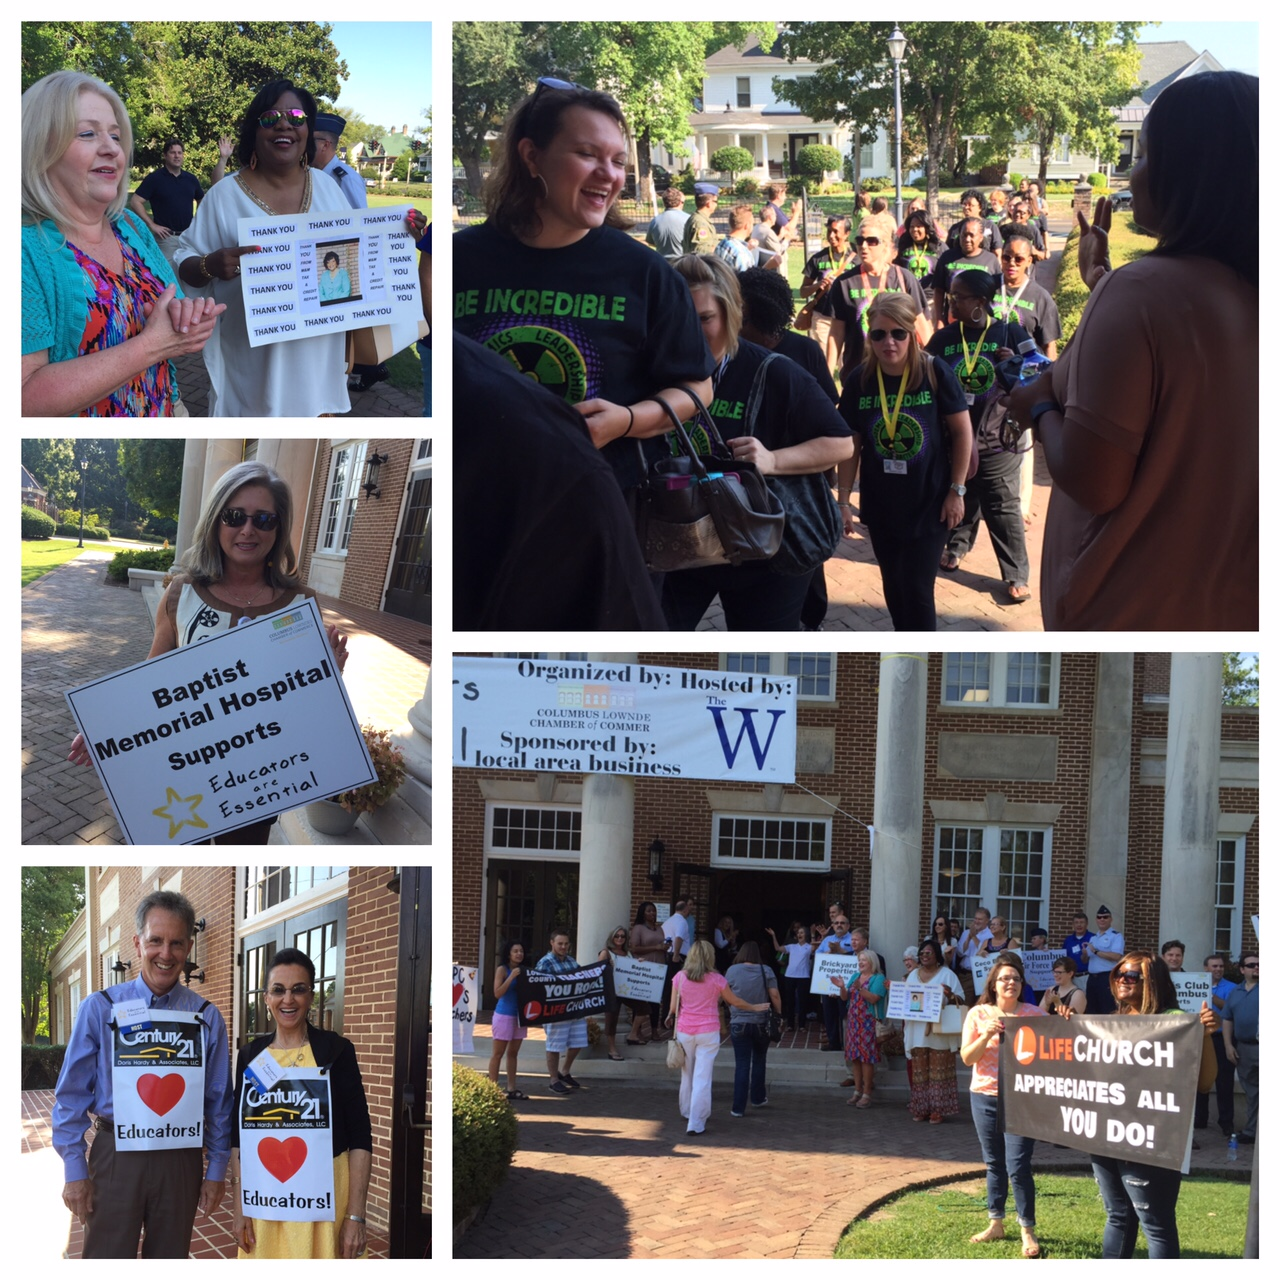 photo collage of smiling people at event holding signs